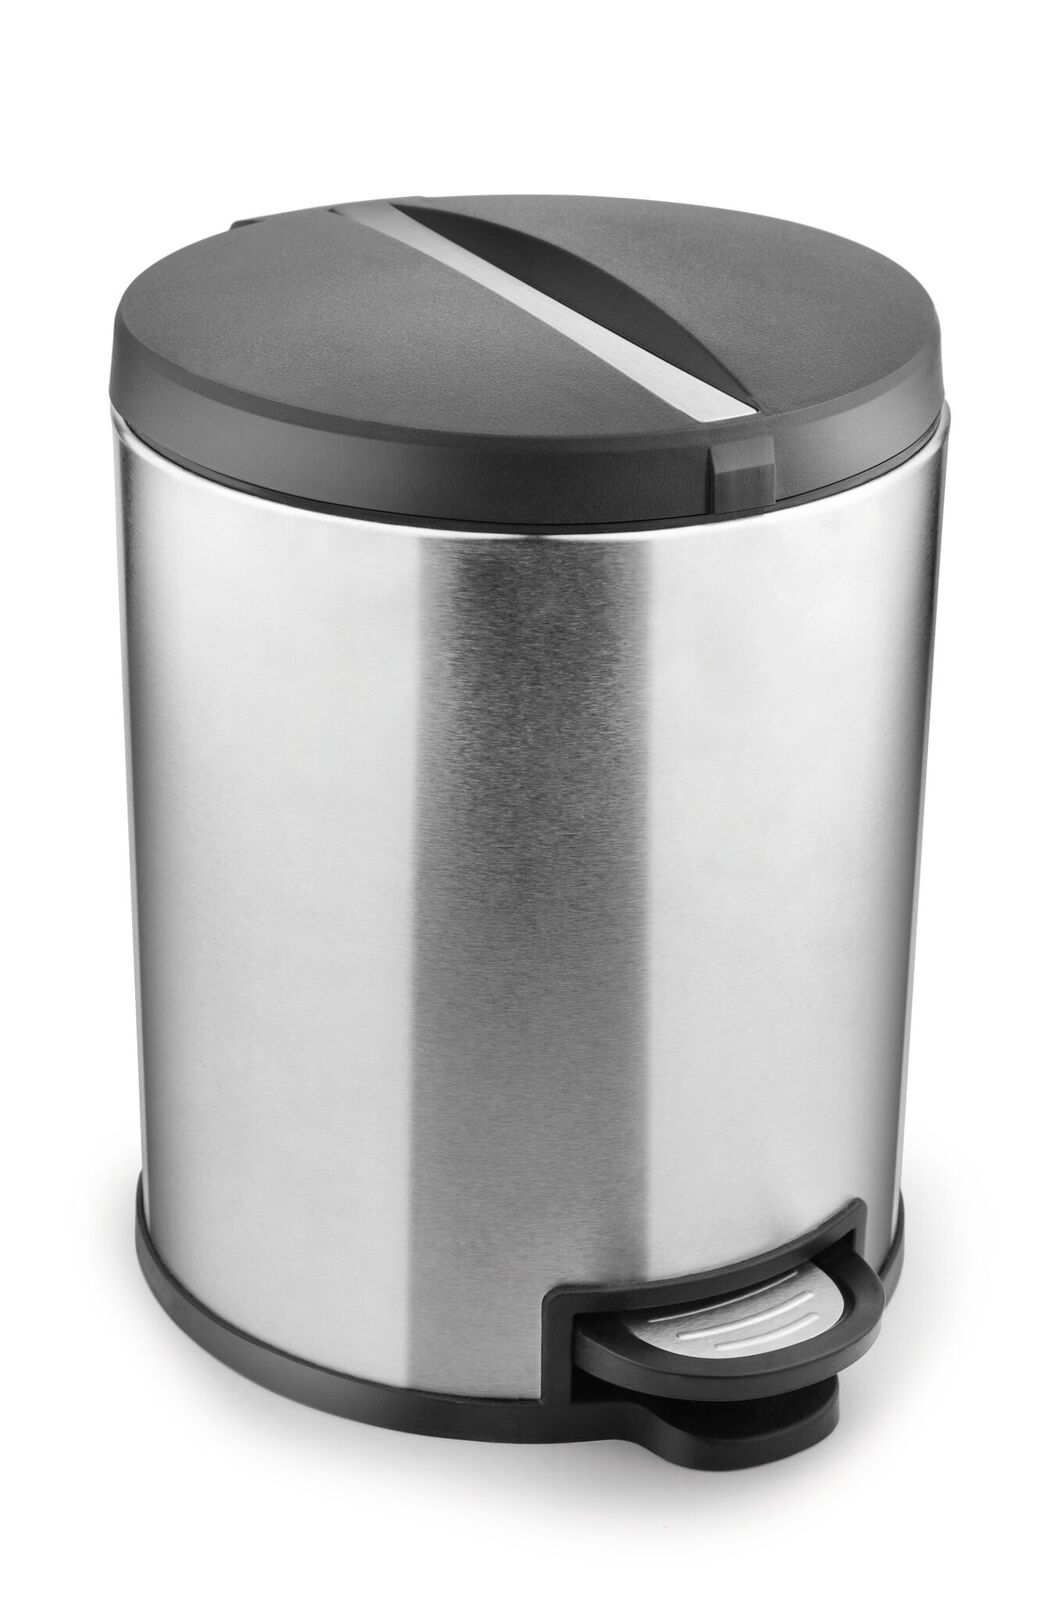 Kleeny Dustibin-5 Ltr Plastic and Stainless Steel Dustbins in Silver Colour by Bonita